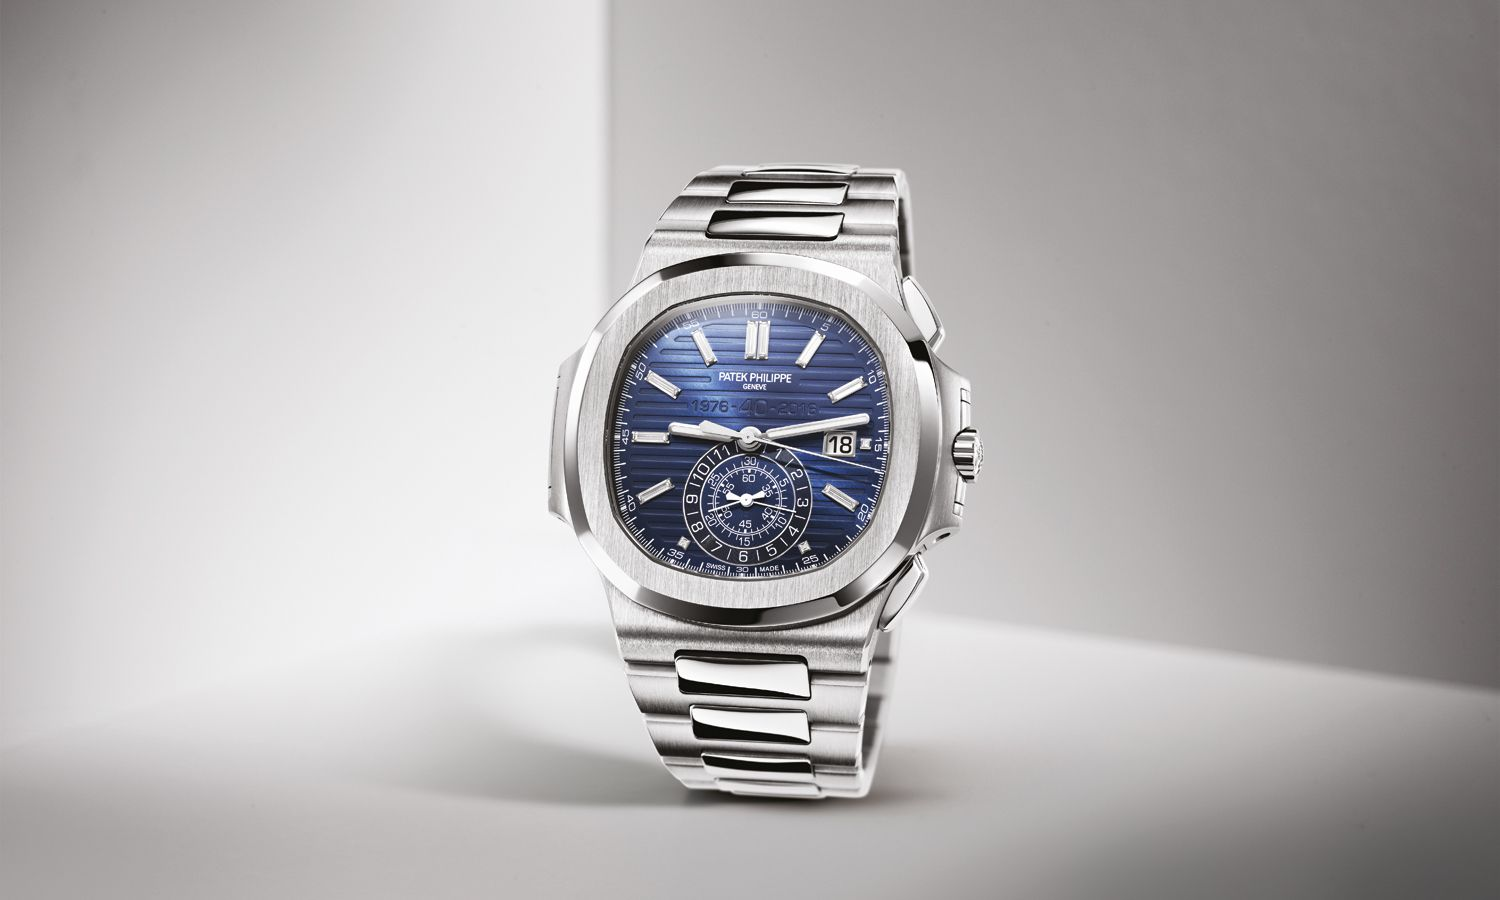 10 Reasons Why You'll Love This Patek Philippe Nautilus Watch